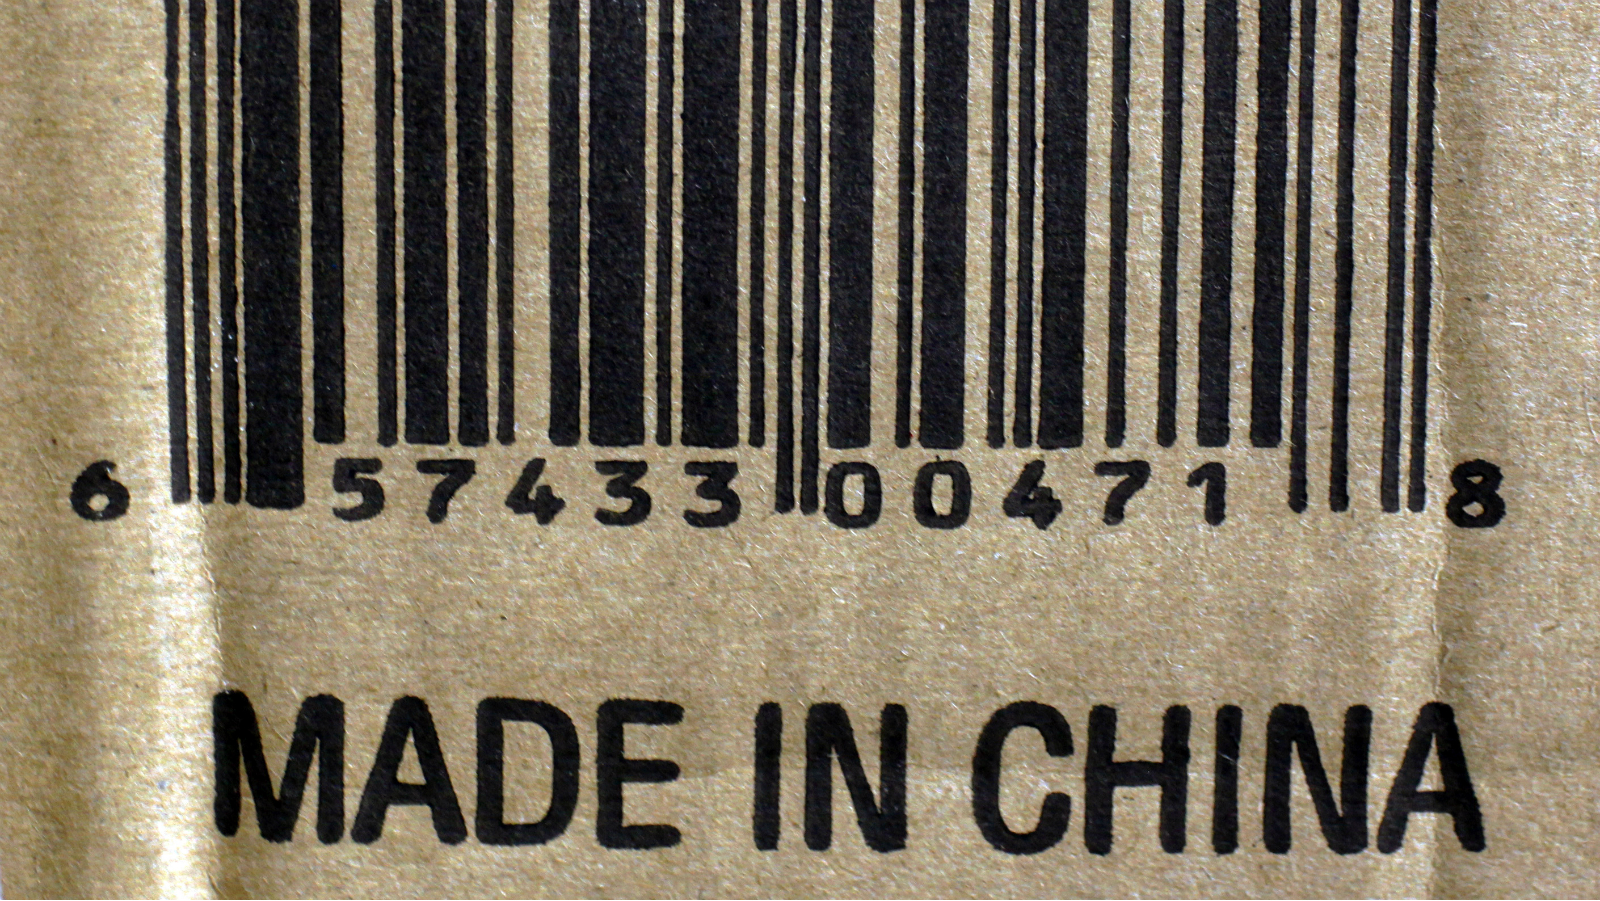 India-China-Make in India-